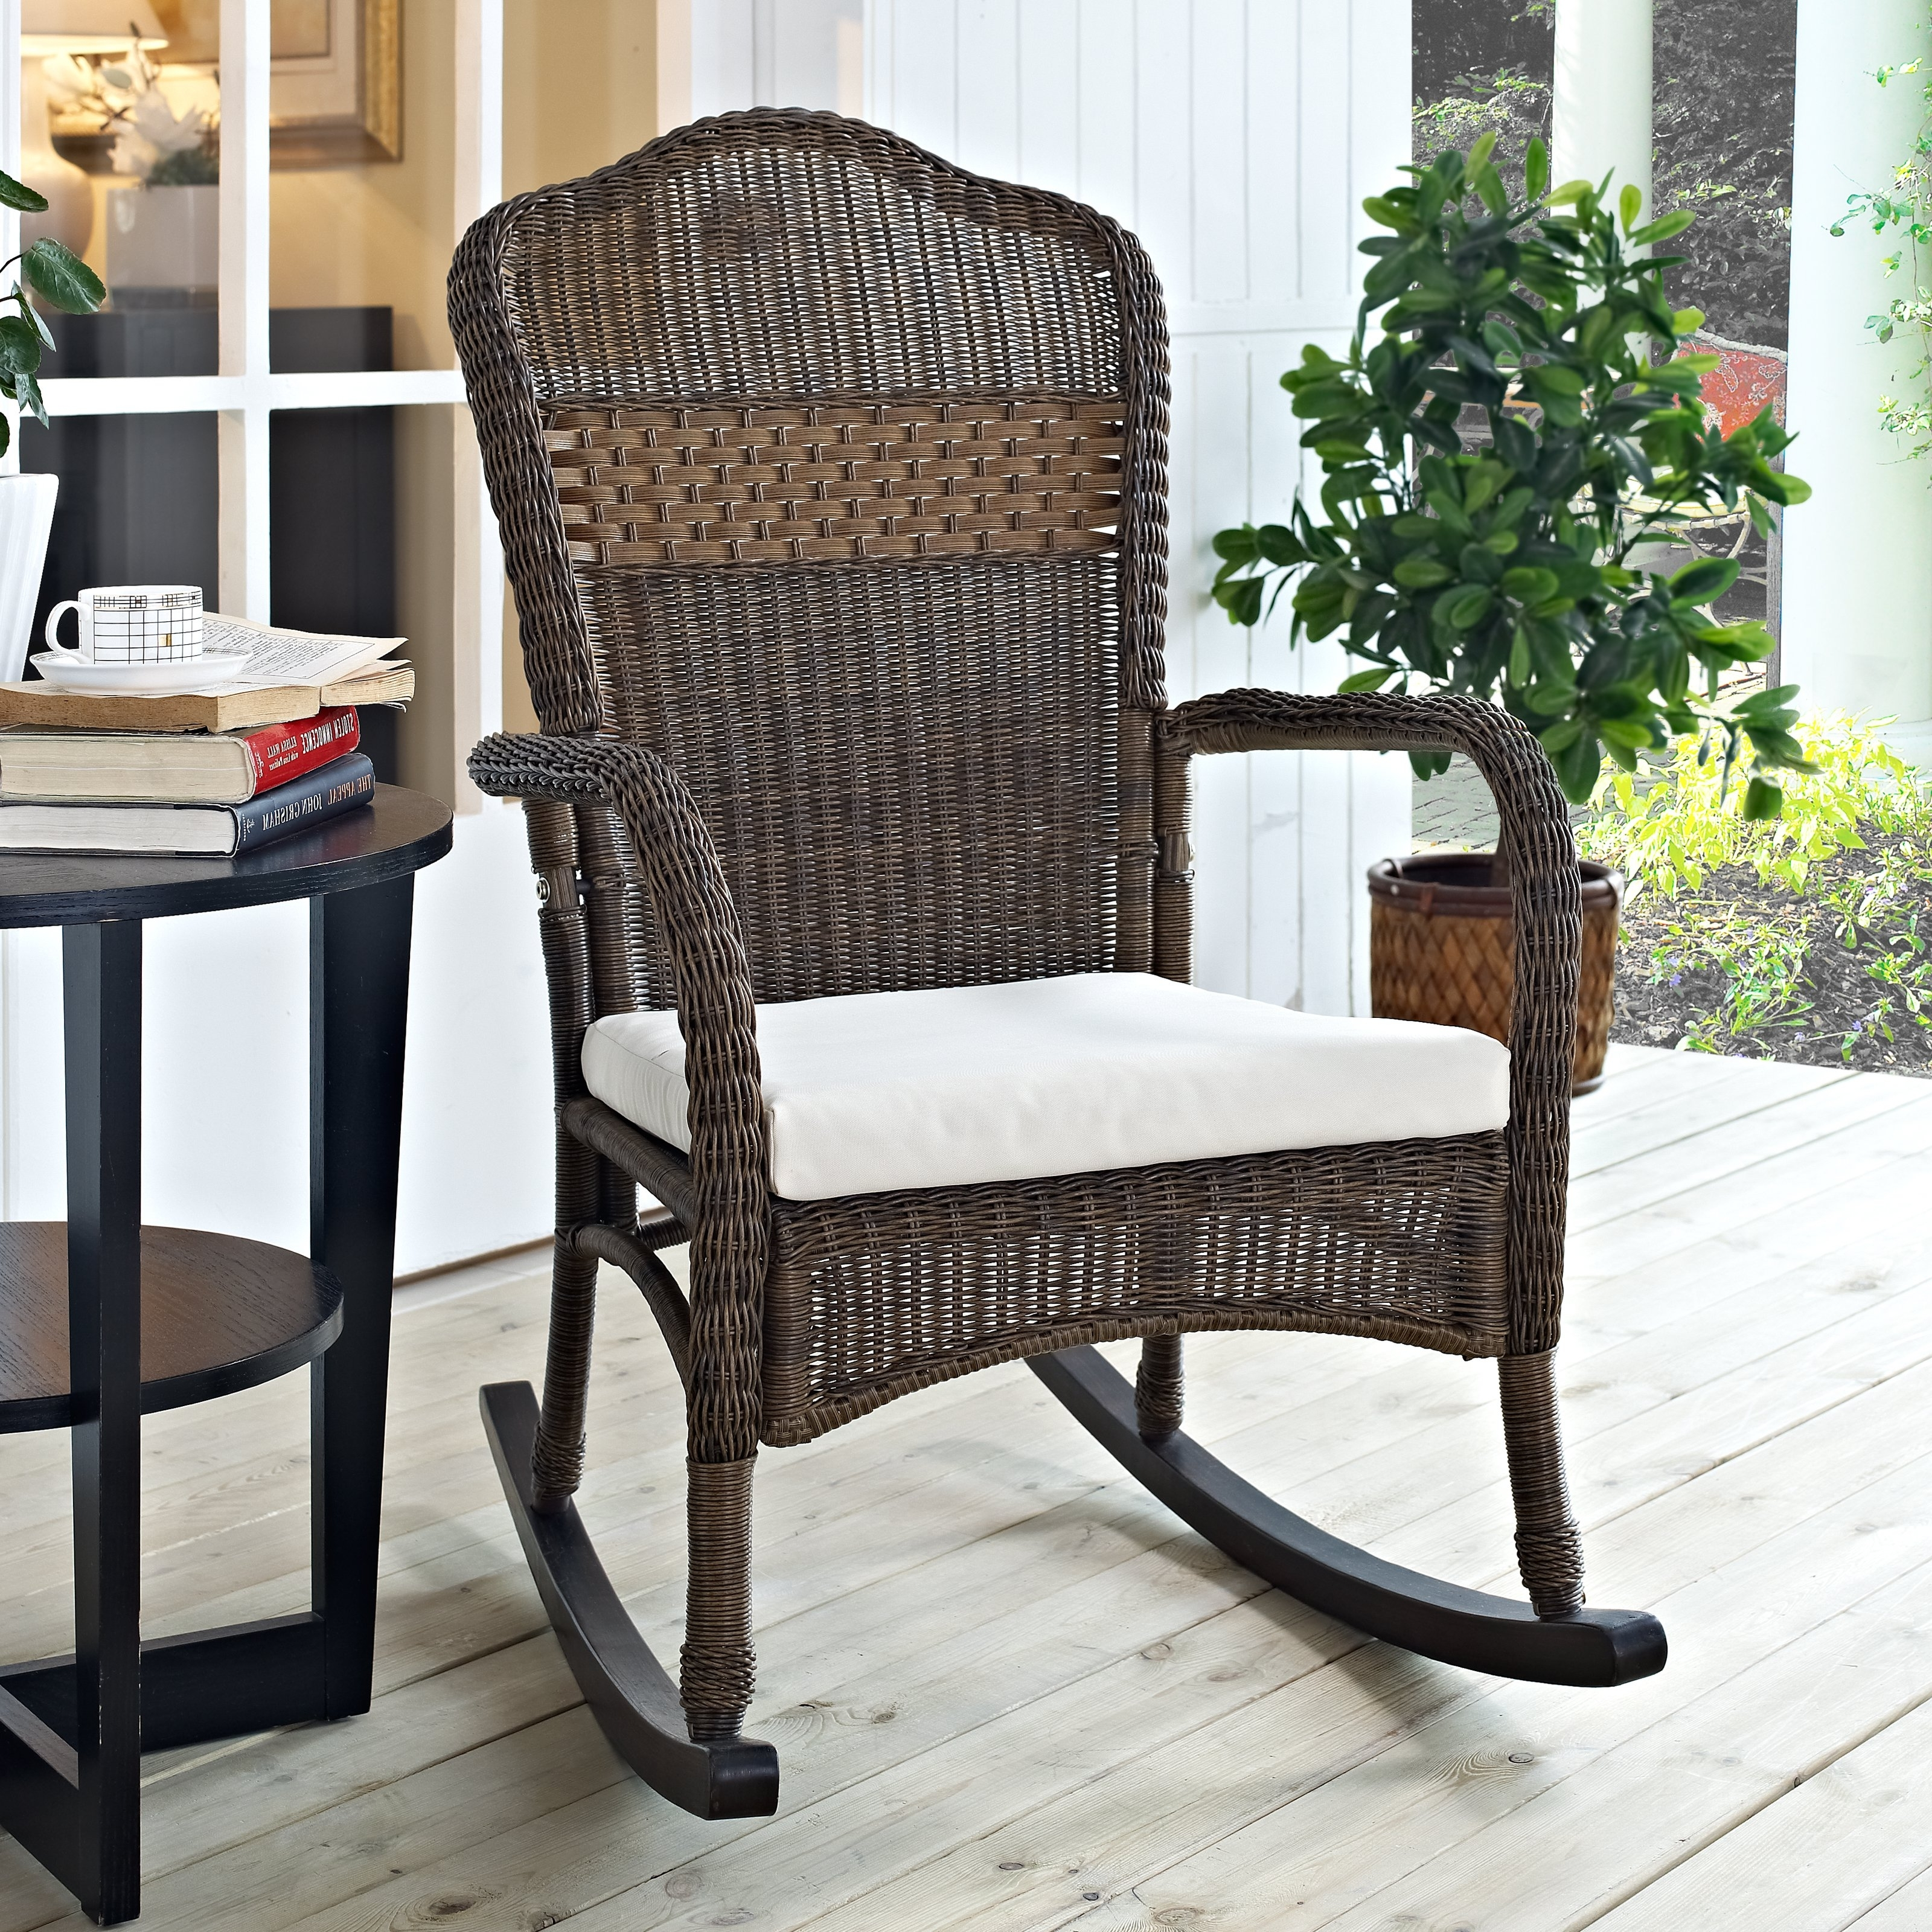 Patio Rocking Chairs With Cushions Regarding Recent Popular Patio Furniture Chairs Outdoor Rocking Top Porch Residence (View 9 of 20)